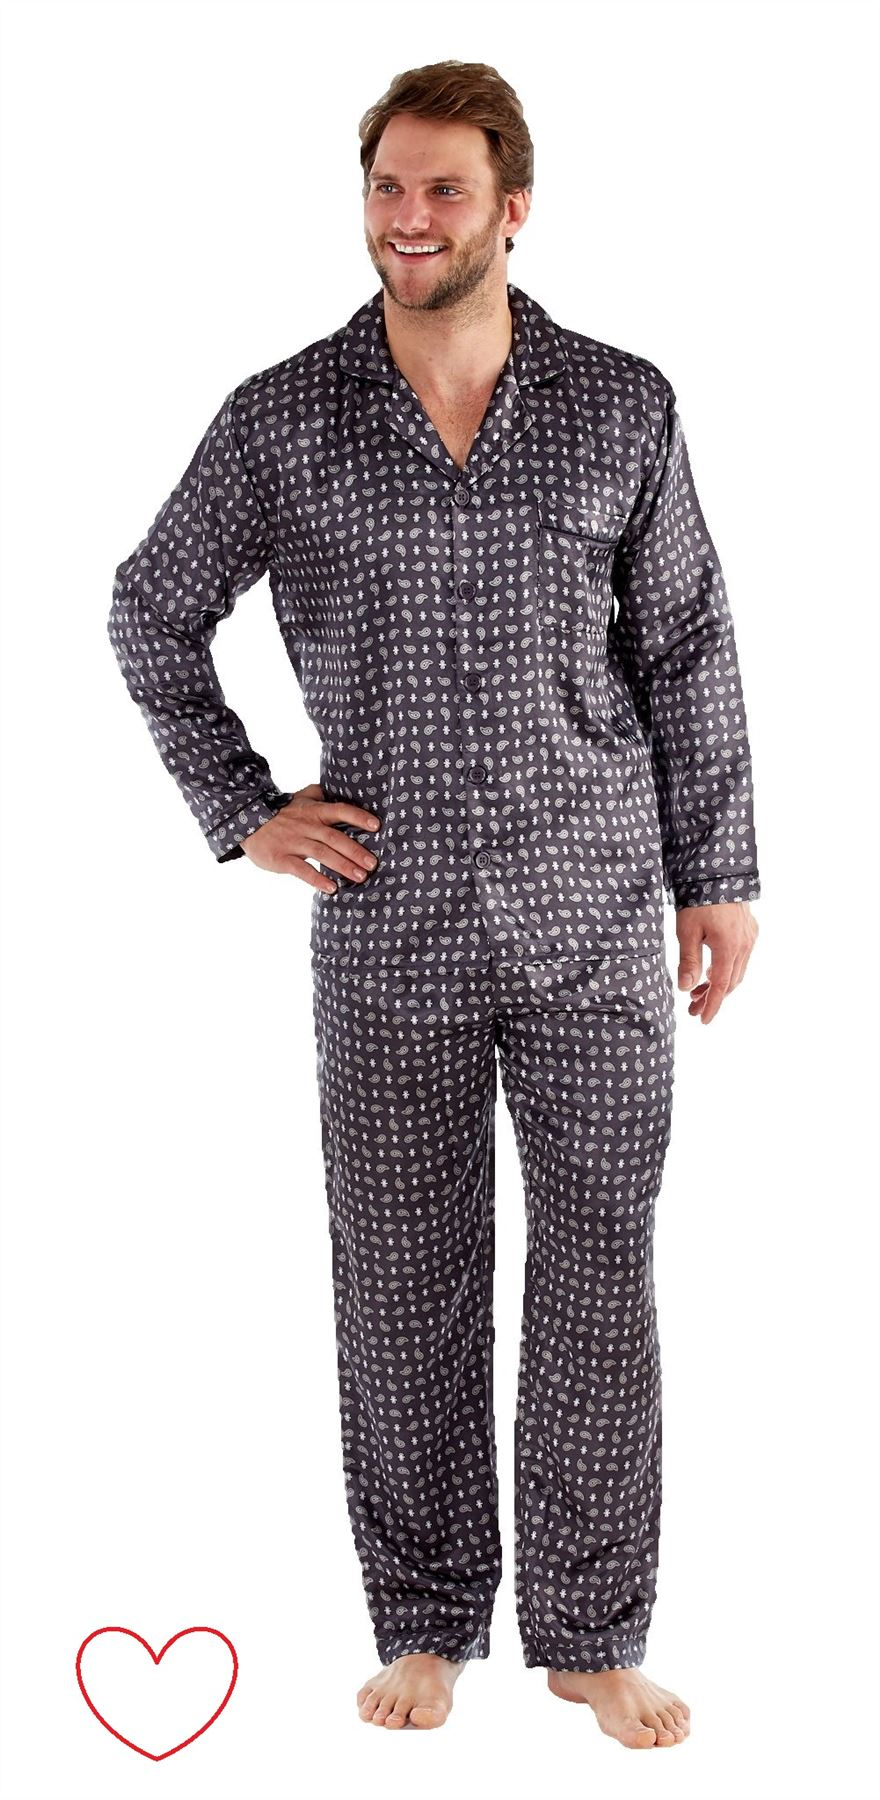 Choose from the latest collection of loungewear for men and shop your favourite items on sale. your browser is not supported. To use ASOS, we recommend using the latest versions of Chrome, Firefox, Safari or Internet Explorer ASOS DESIGN straight pyjama bottoms in grey marl with white side stripe.